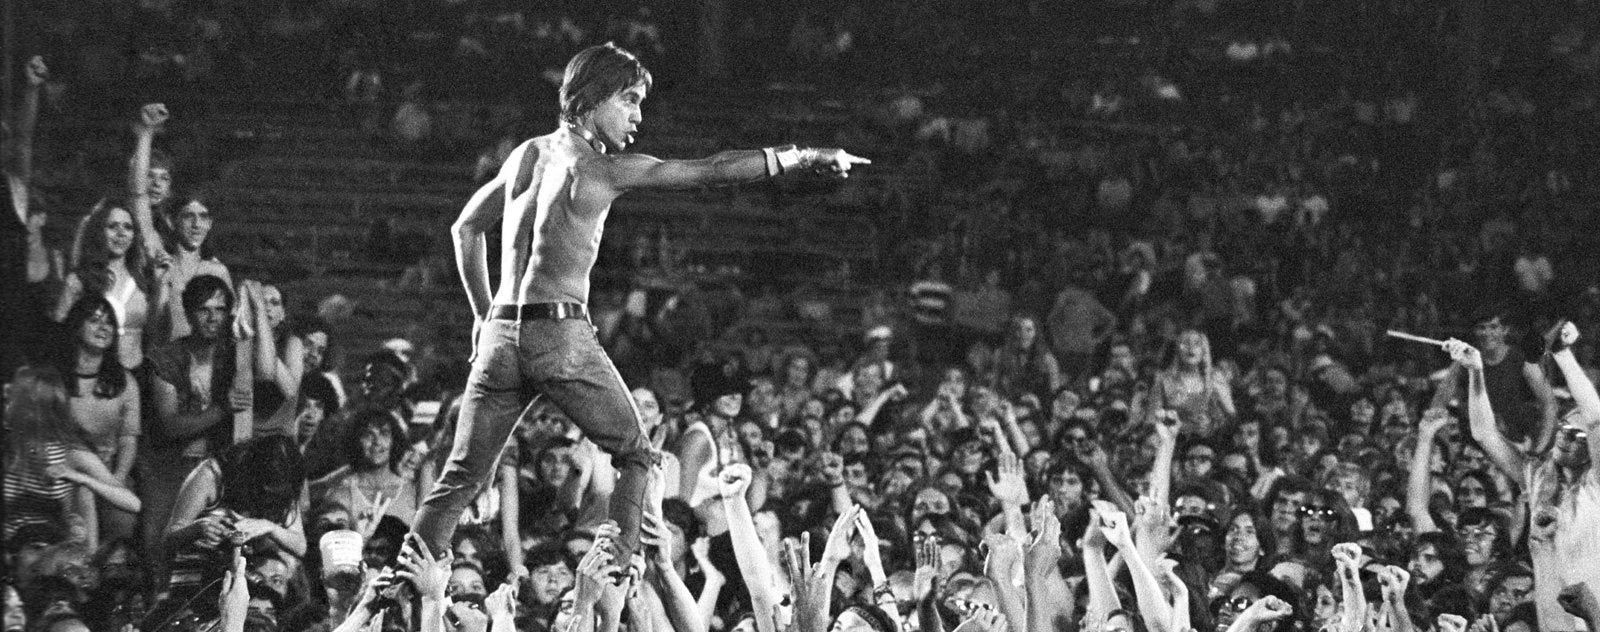 Punk Band The Stooges